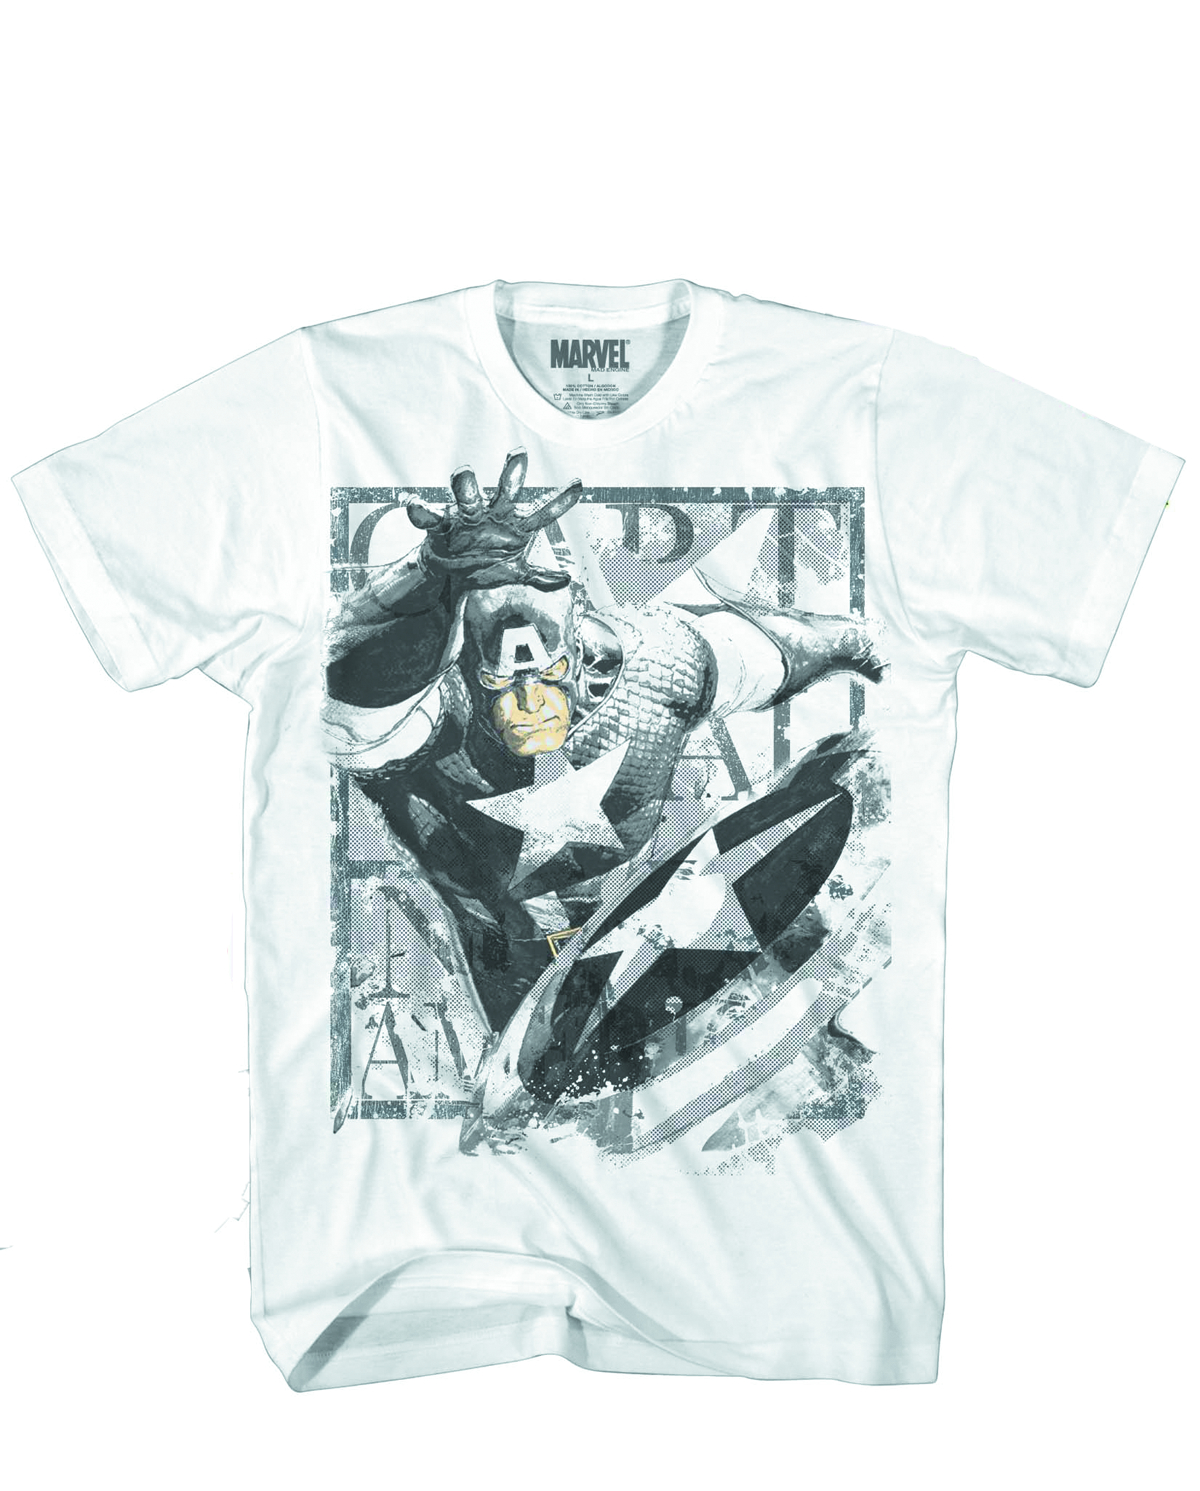 CAPTAIN AMERICA THROWING STAR WHITE T/S XL